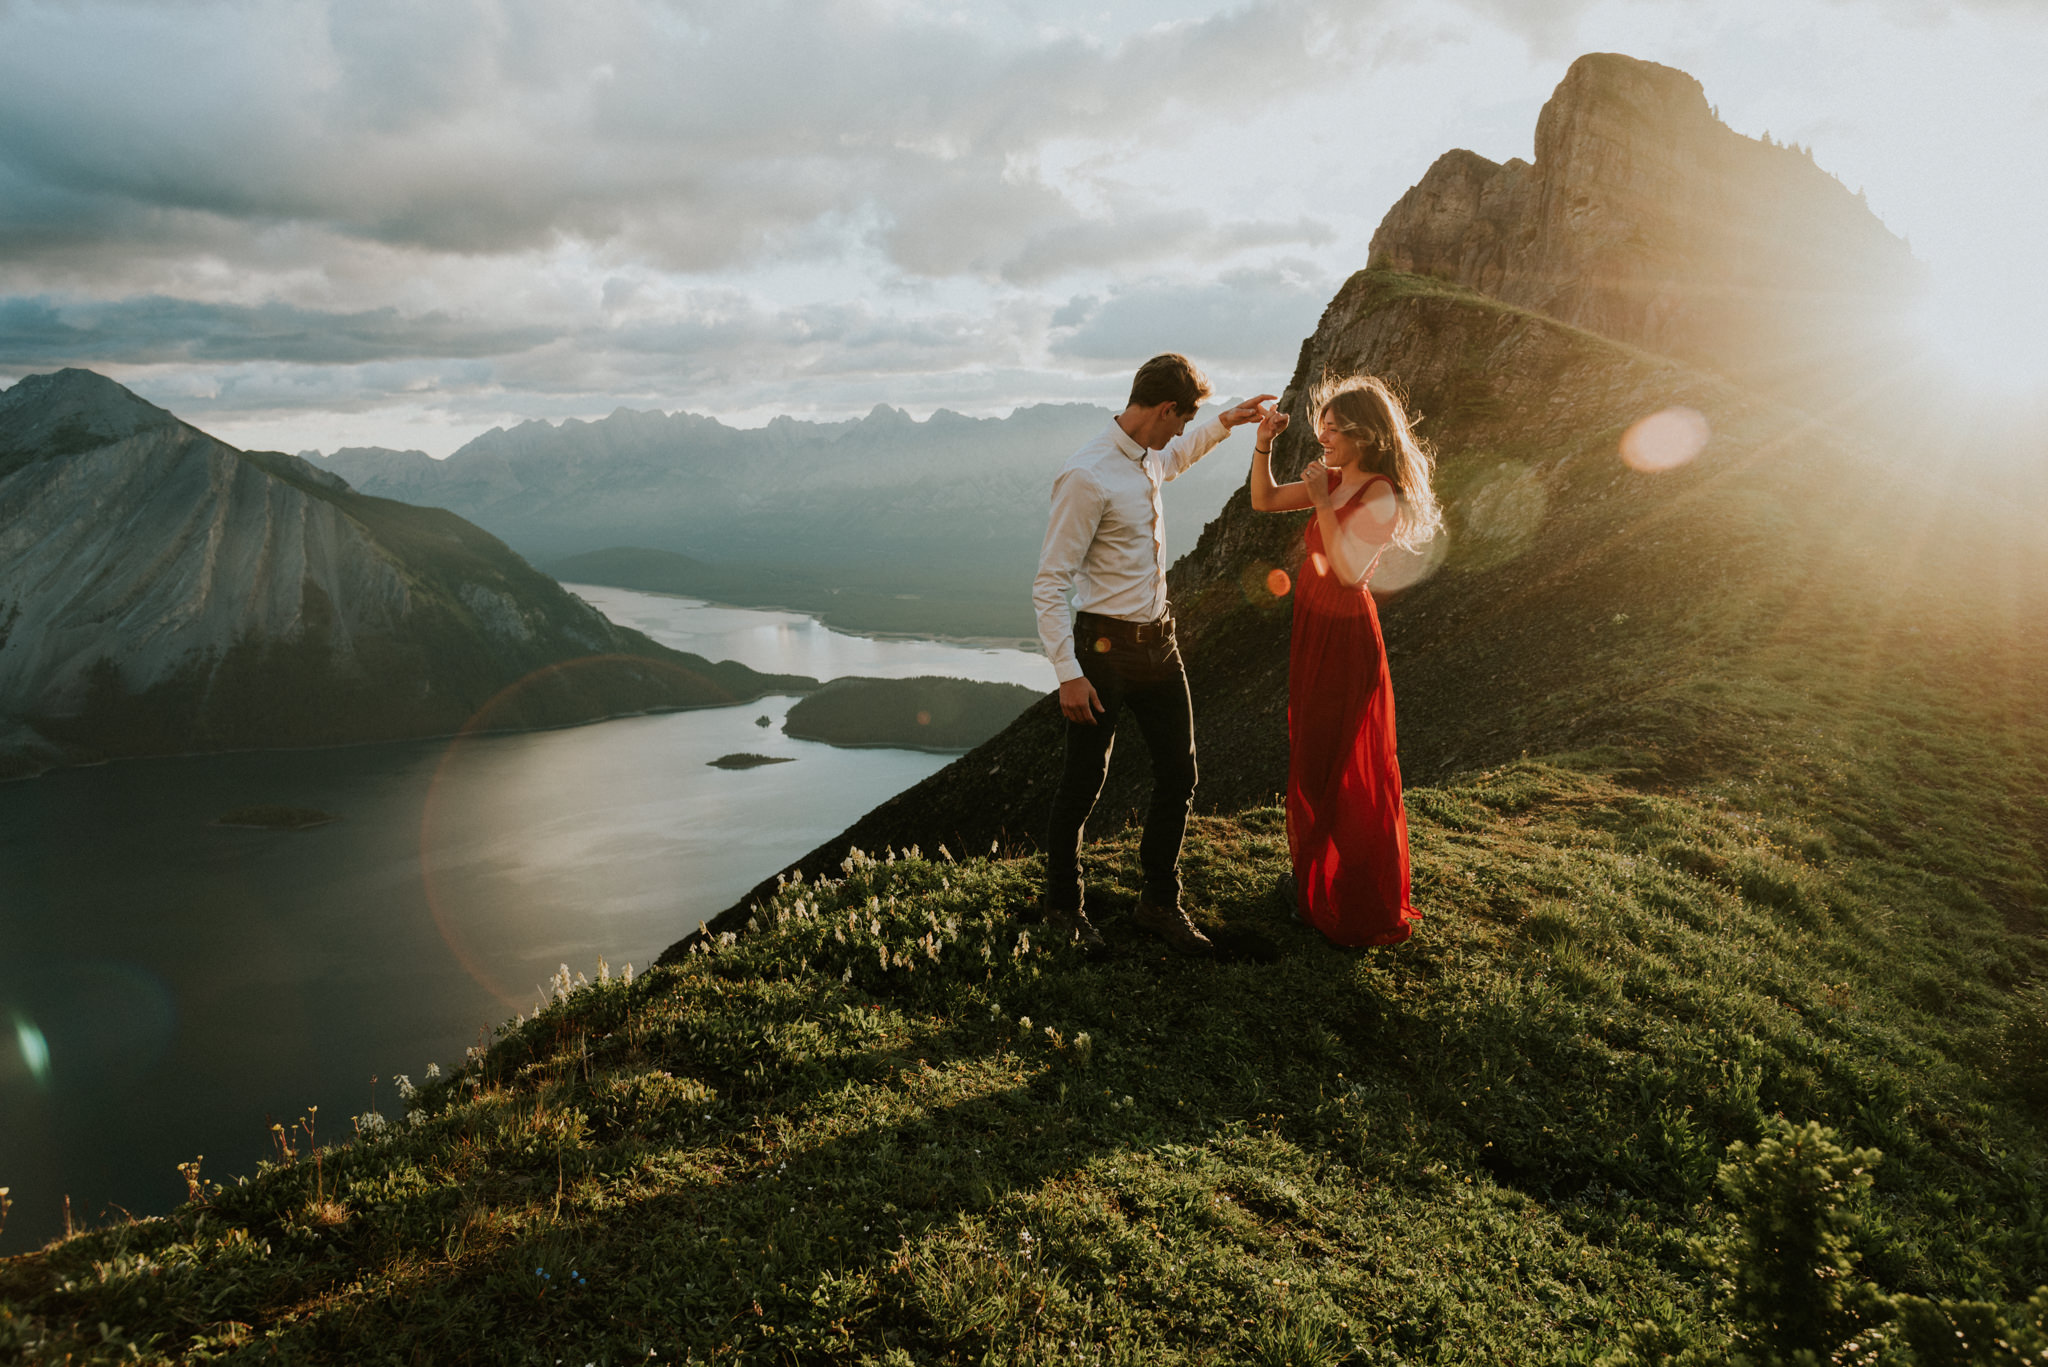 Adventure elopement and intimate wedding photographer   Let's talk about the adventure elopement of your dreams!